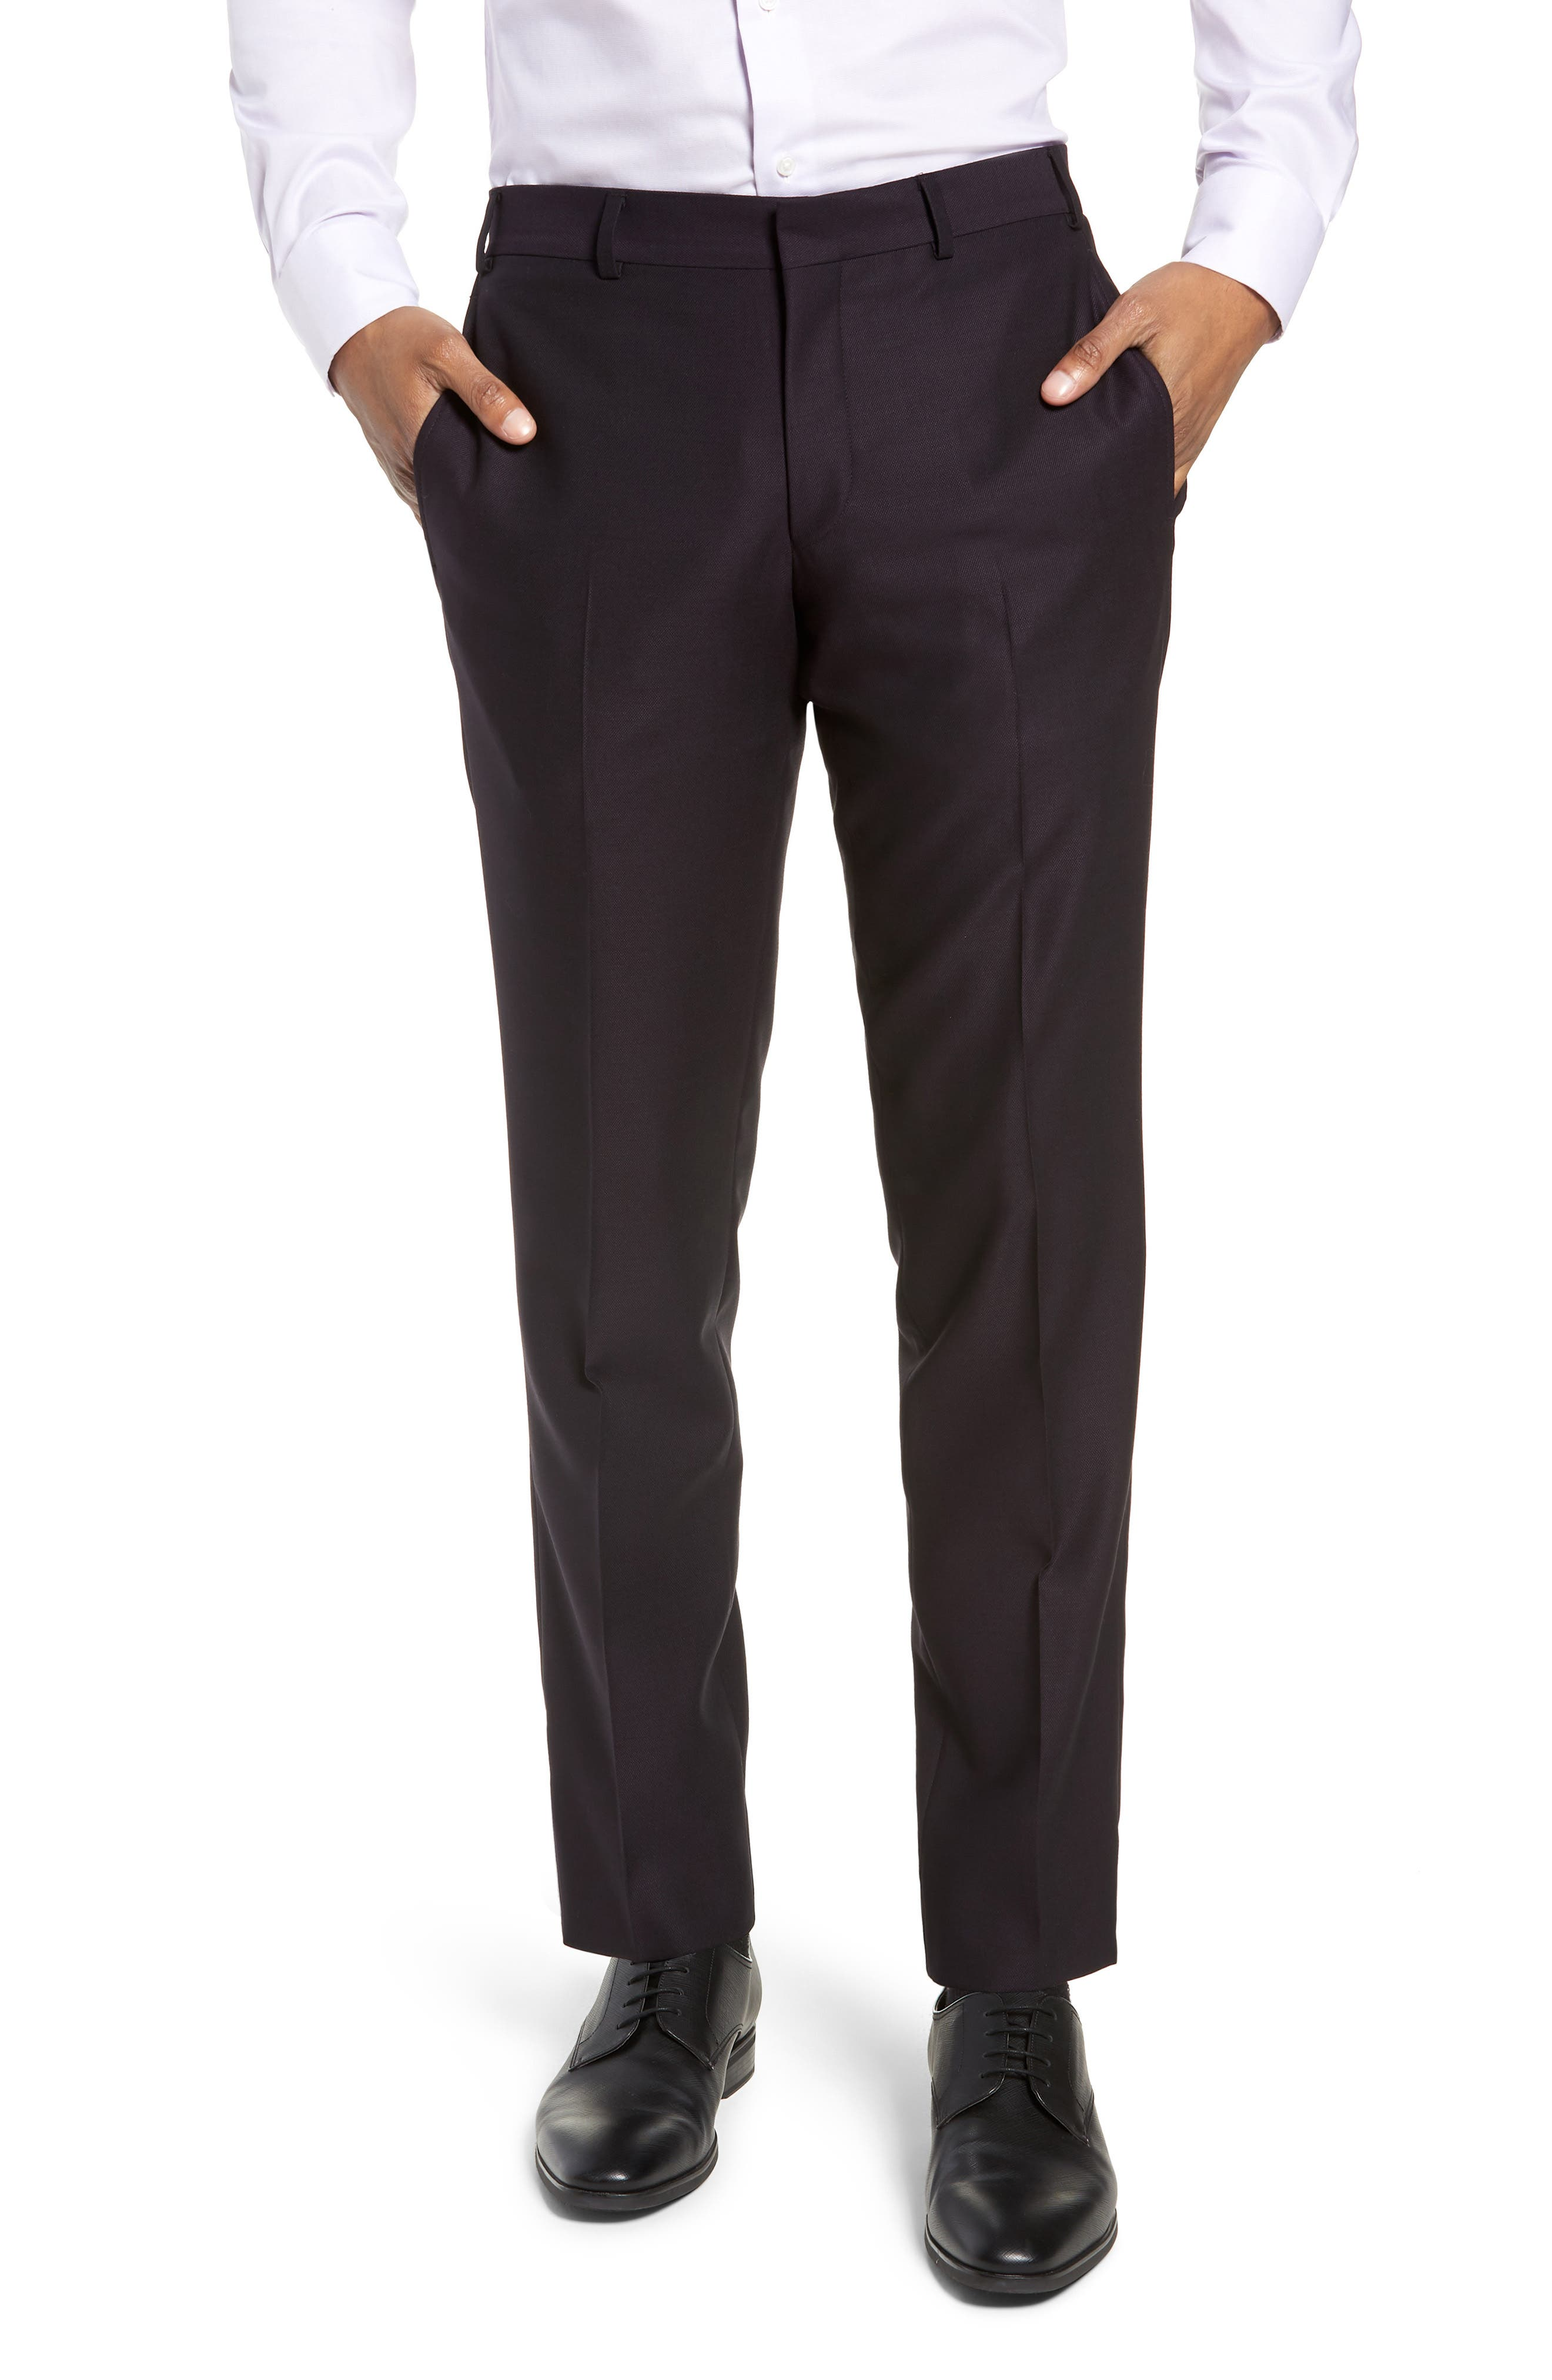 Roger Extra Trim Fit Solid Wool Suit,                             Alternate thumbnail 6, color,                             DEEP EGGPLANT